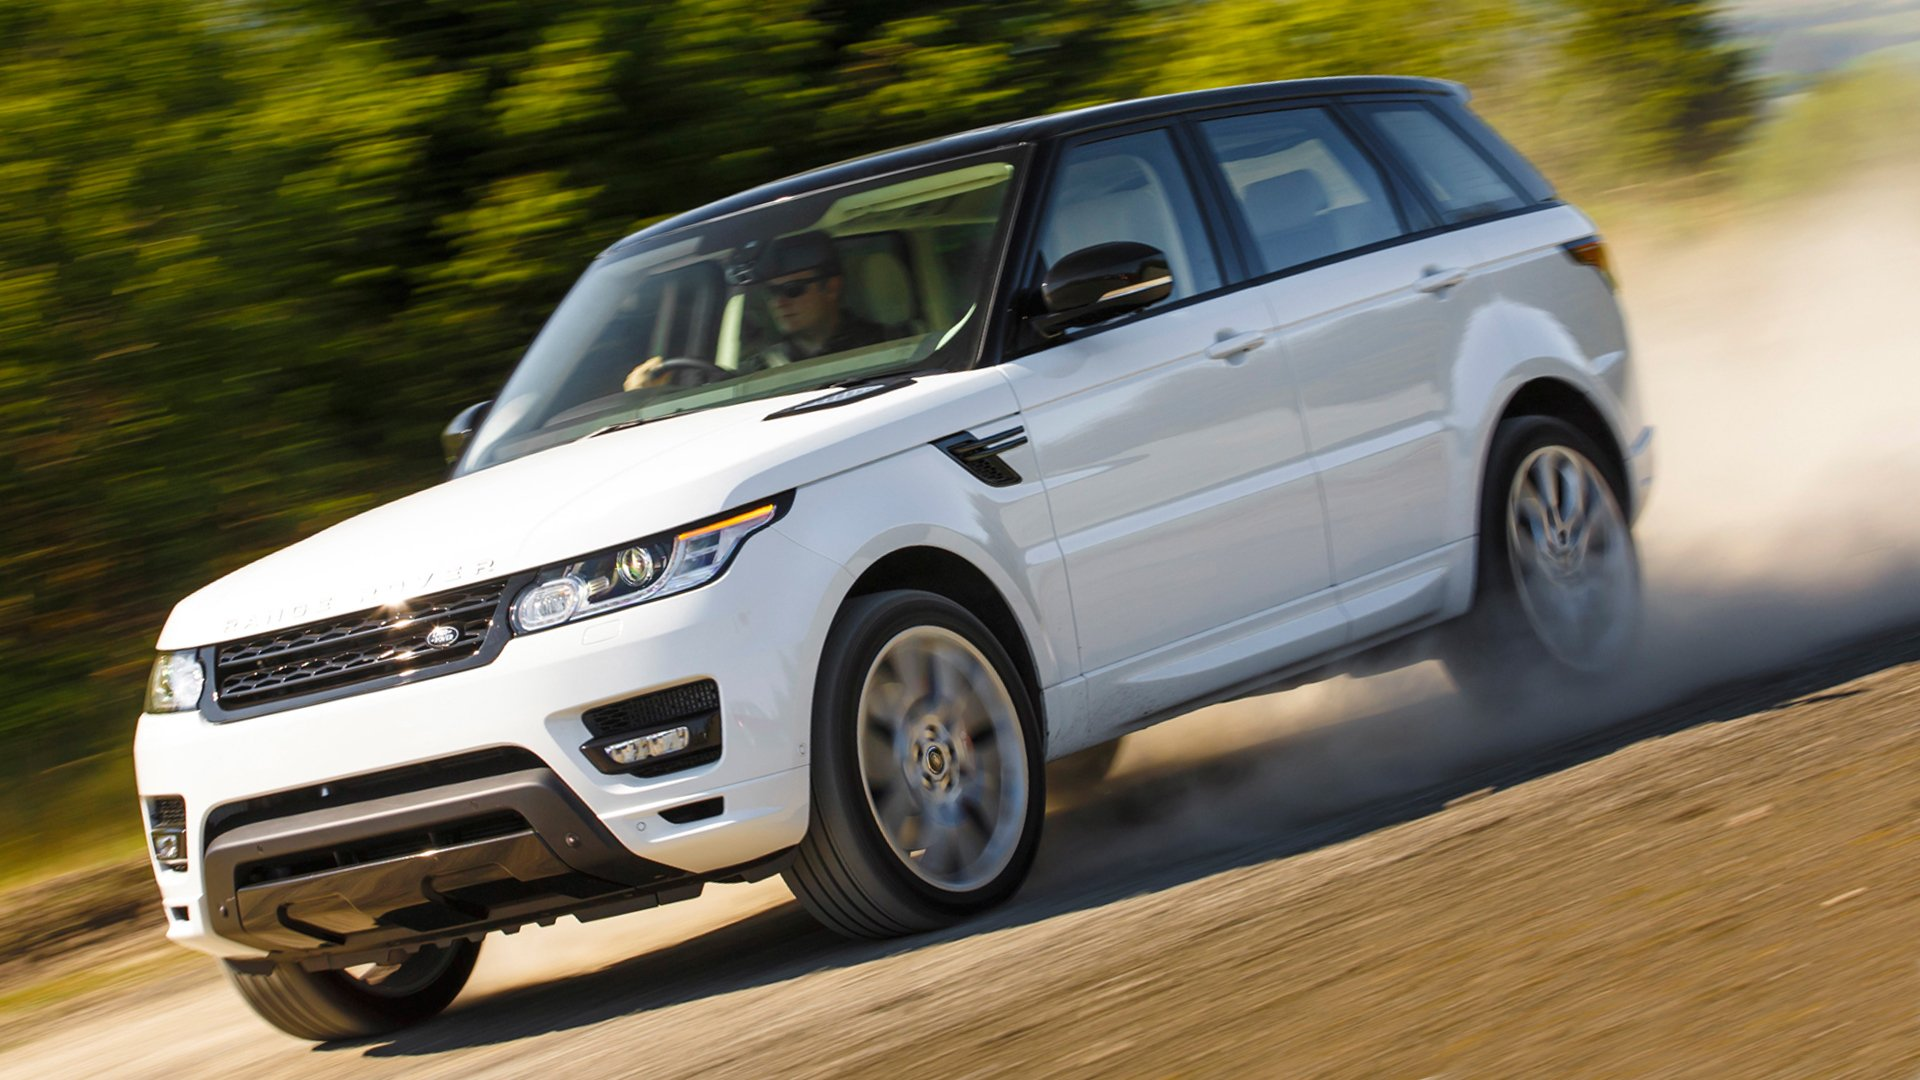 New 2019 Range Rover Sport Price